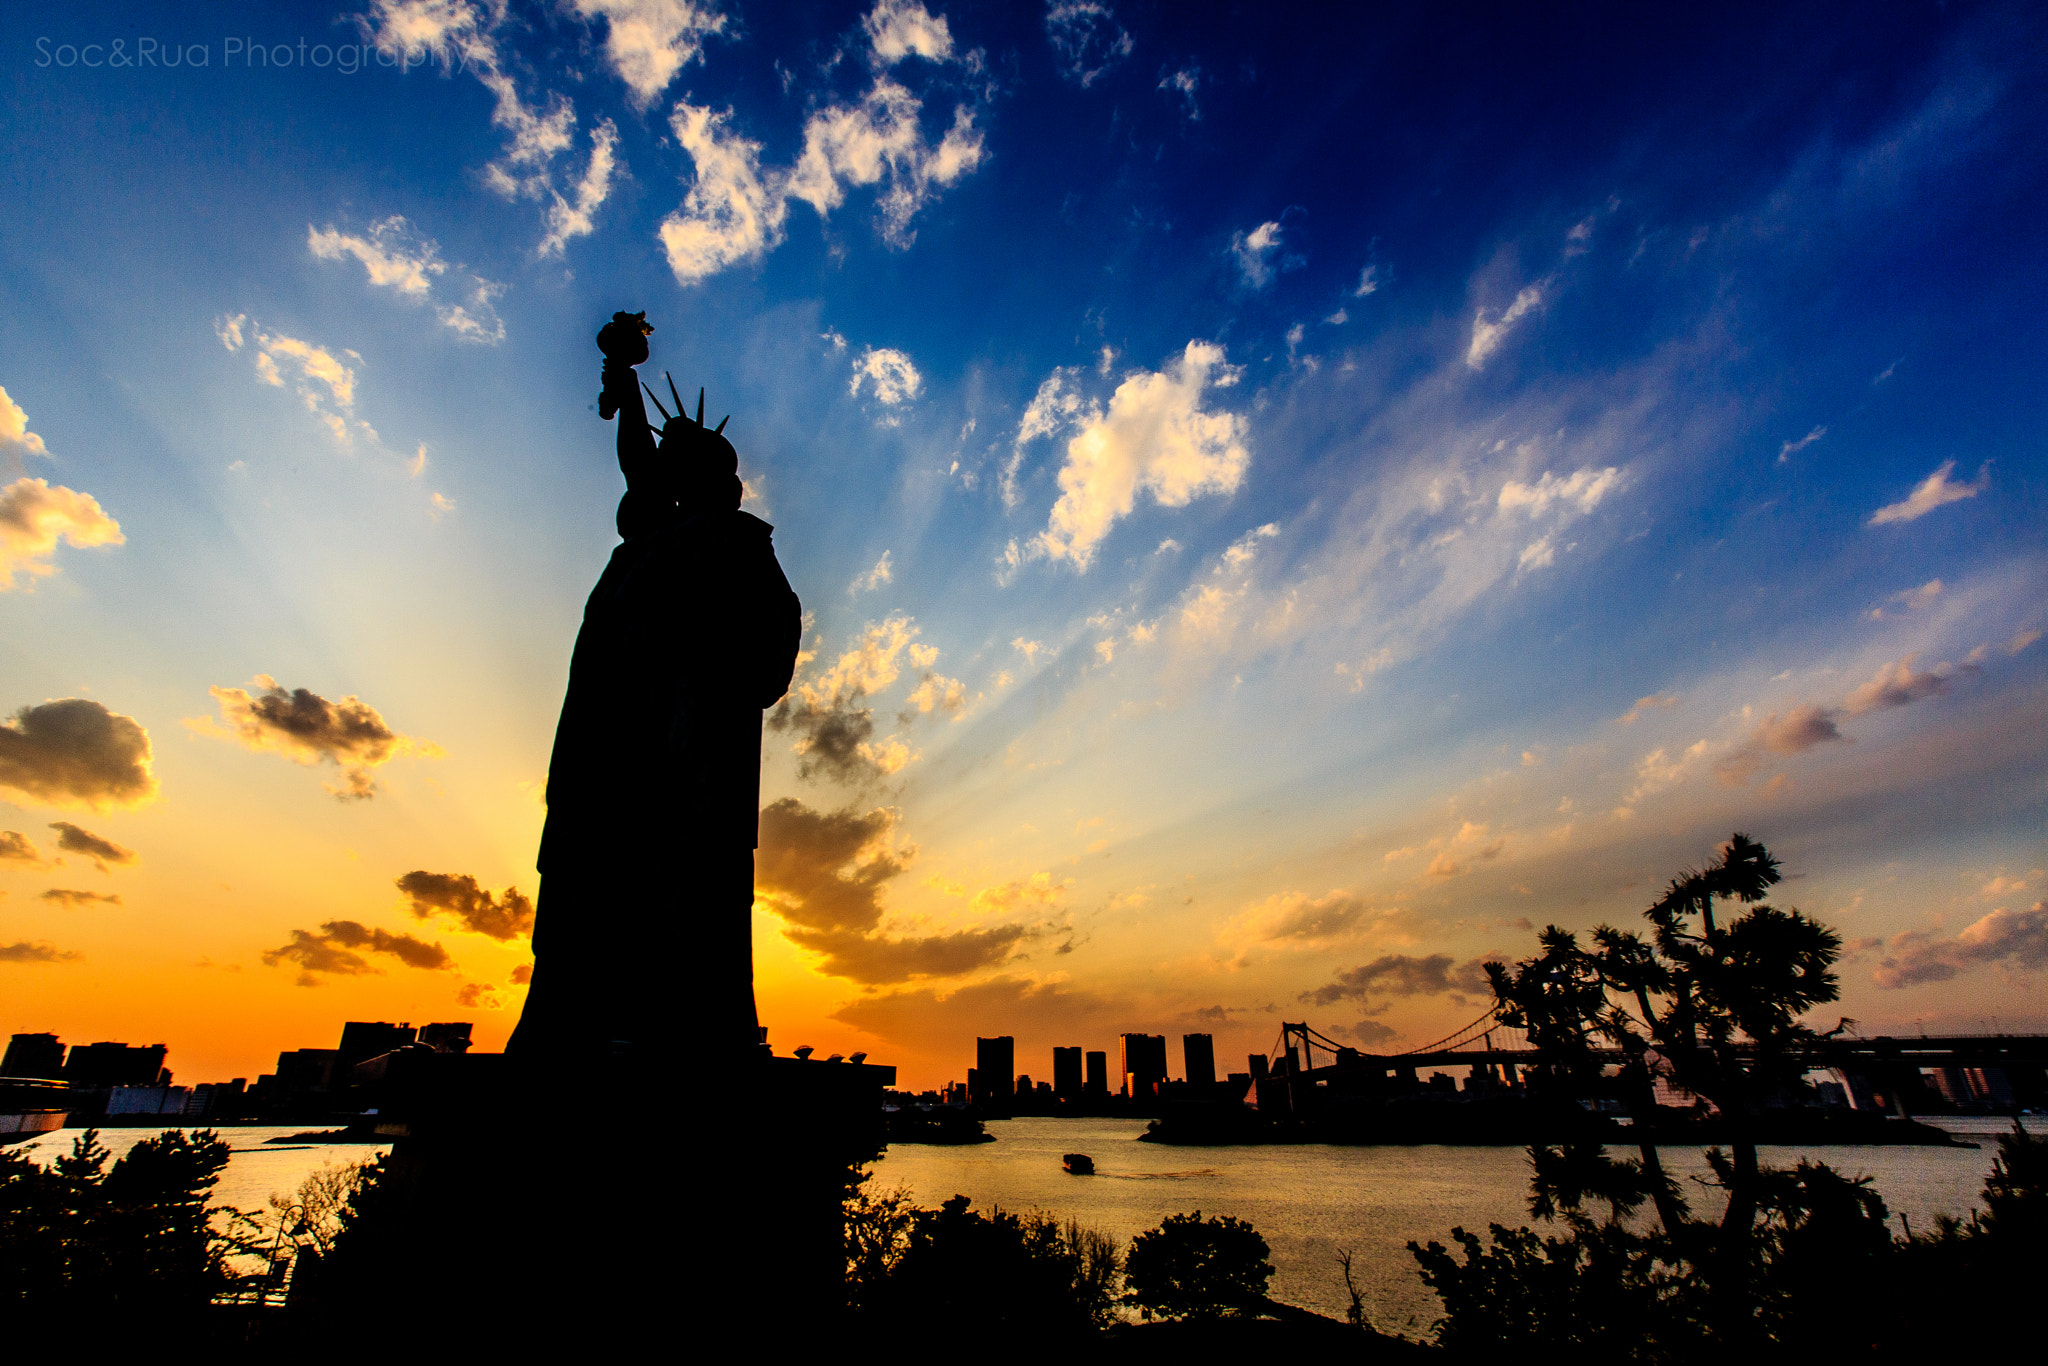 Photograph Liberty statue in Odaiba, Tokyo. by Huy Tonthat on 500px